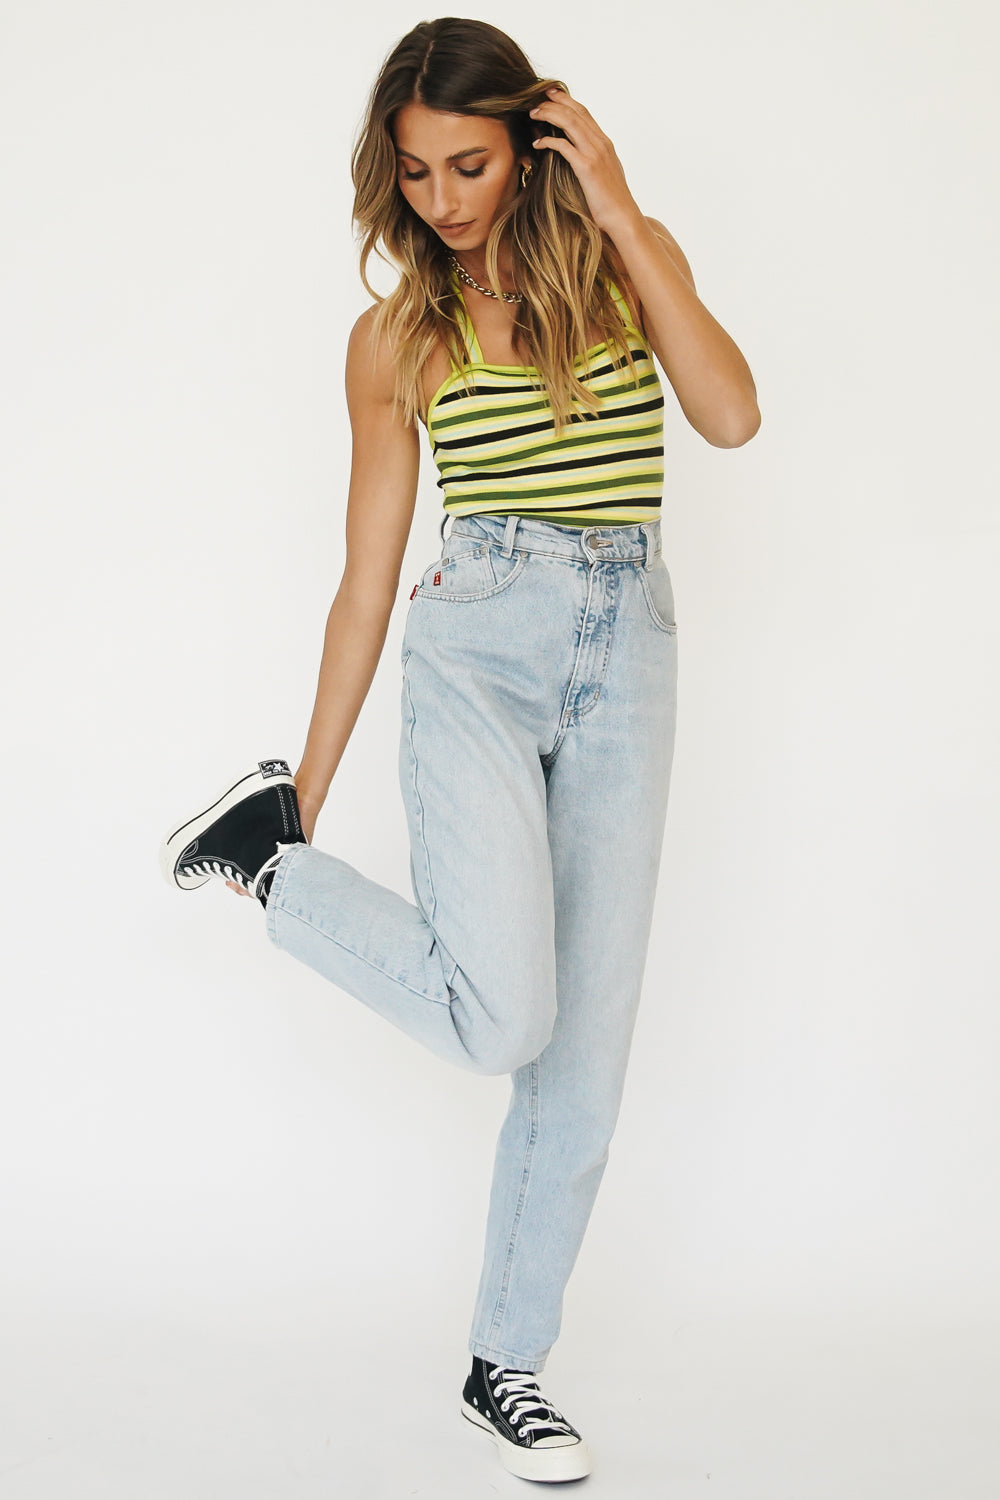 Summer Edit Ribbed Knit Top // Lemon